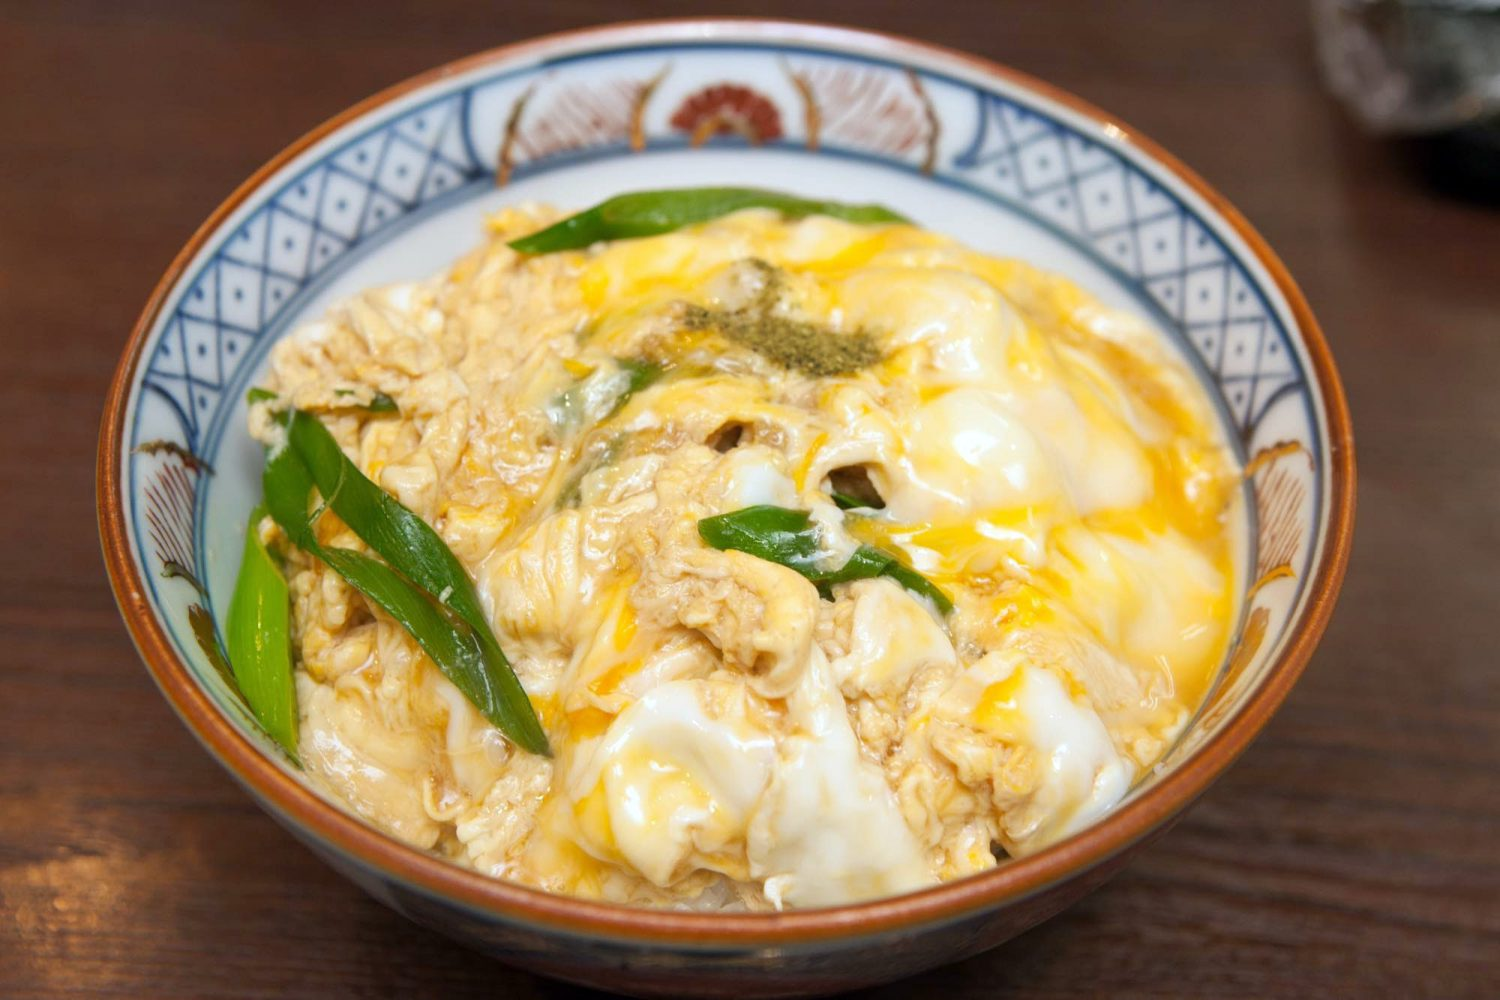 KITSUNE-DON(きつね丼) : Rice topped with sliced fried Tofu, scallion & partly-cooked egg